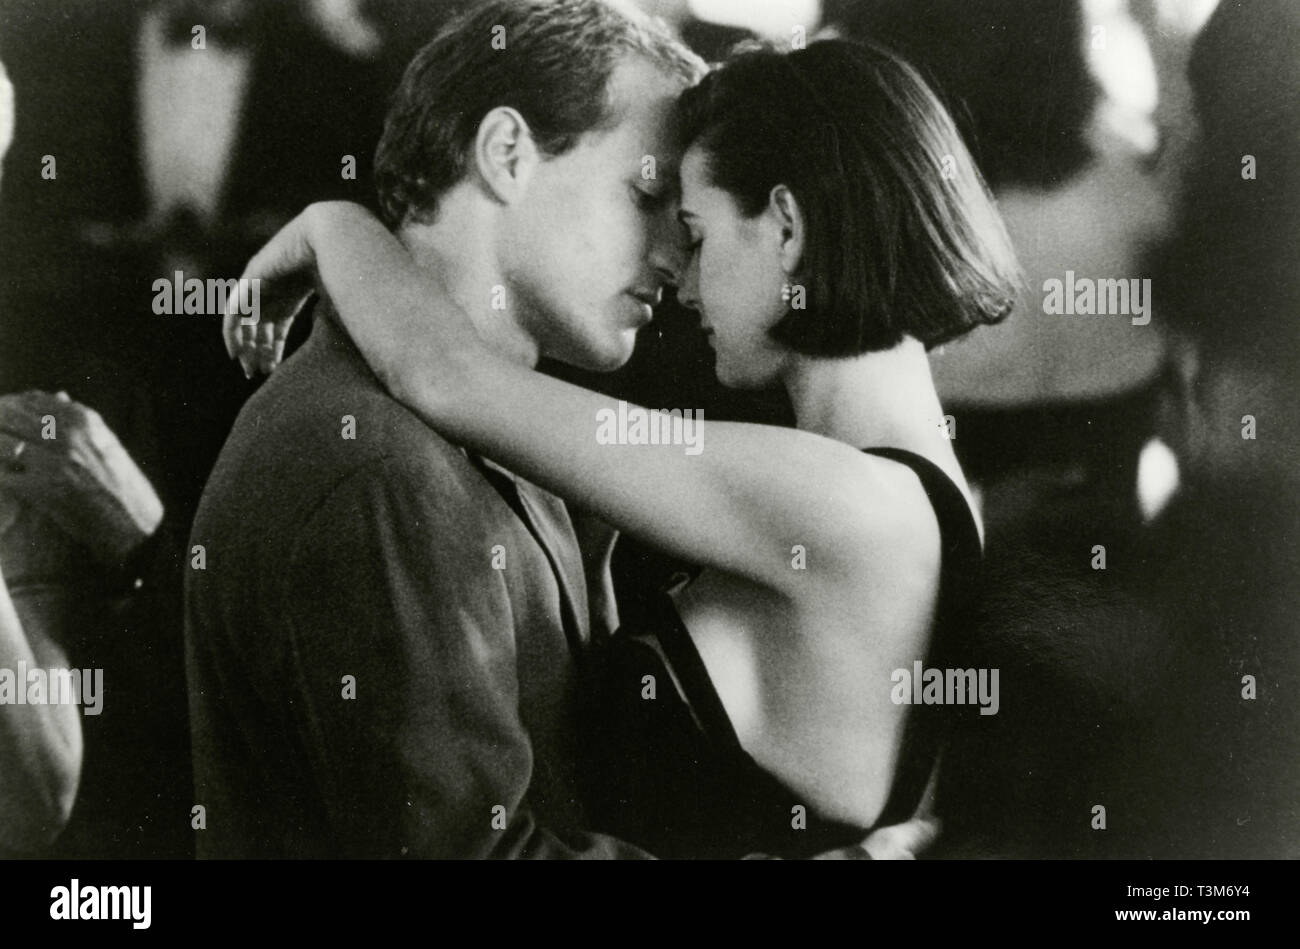 Demi Moore and Woody Harrelson in the movie Indecent Proposal, 1993 - Stock Image